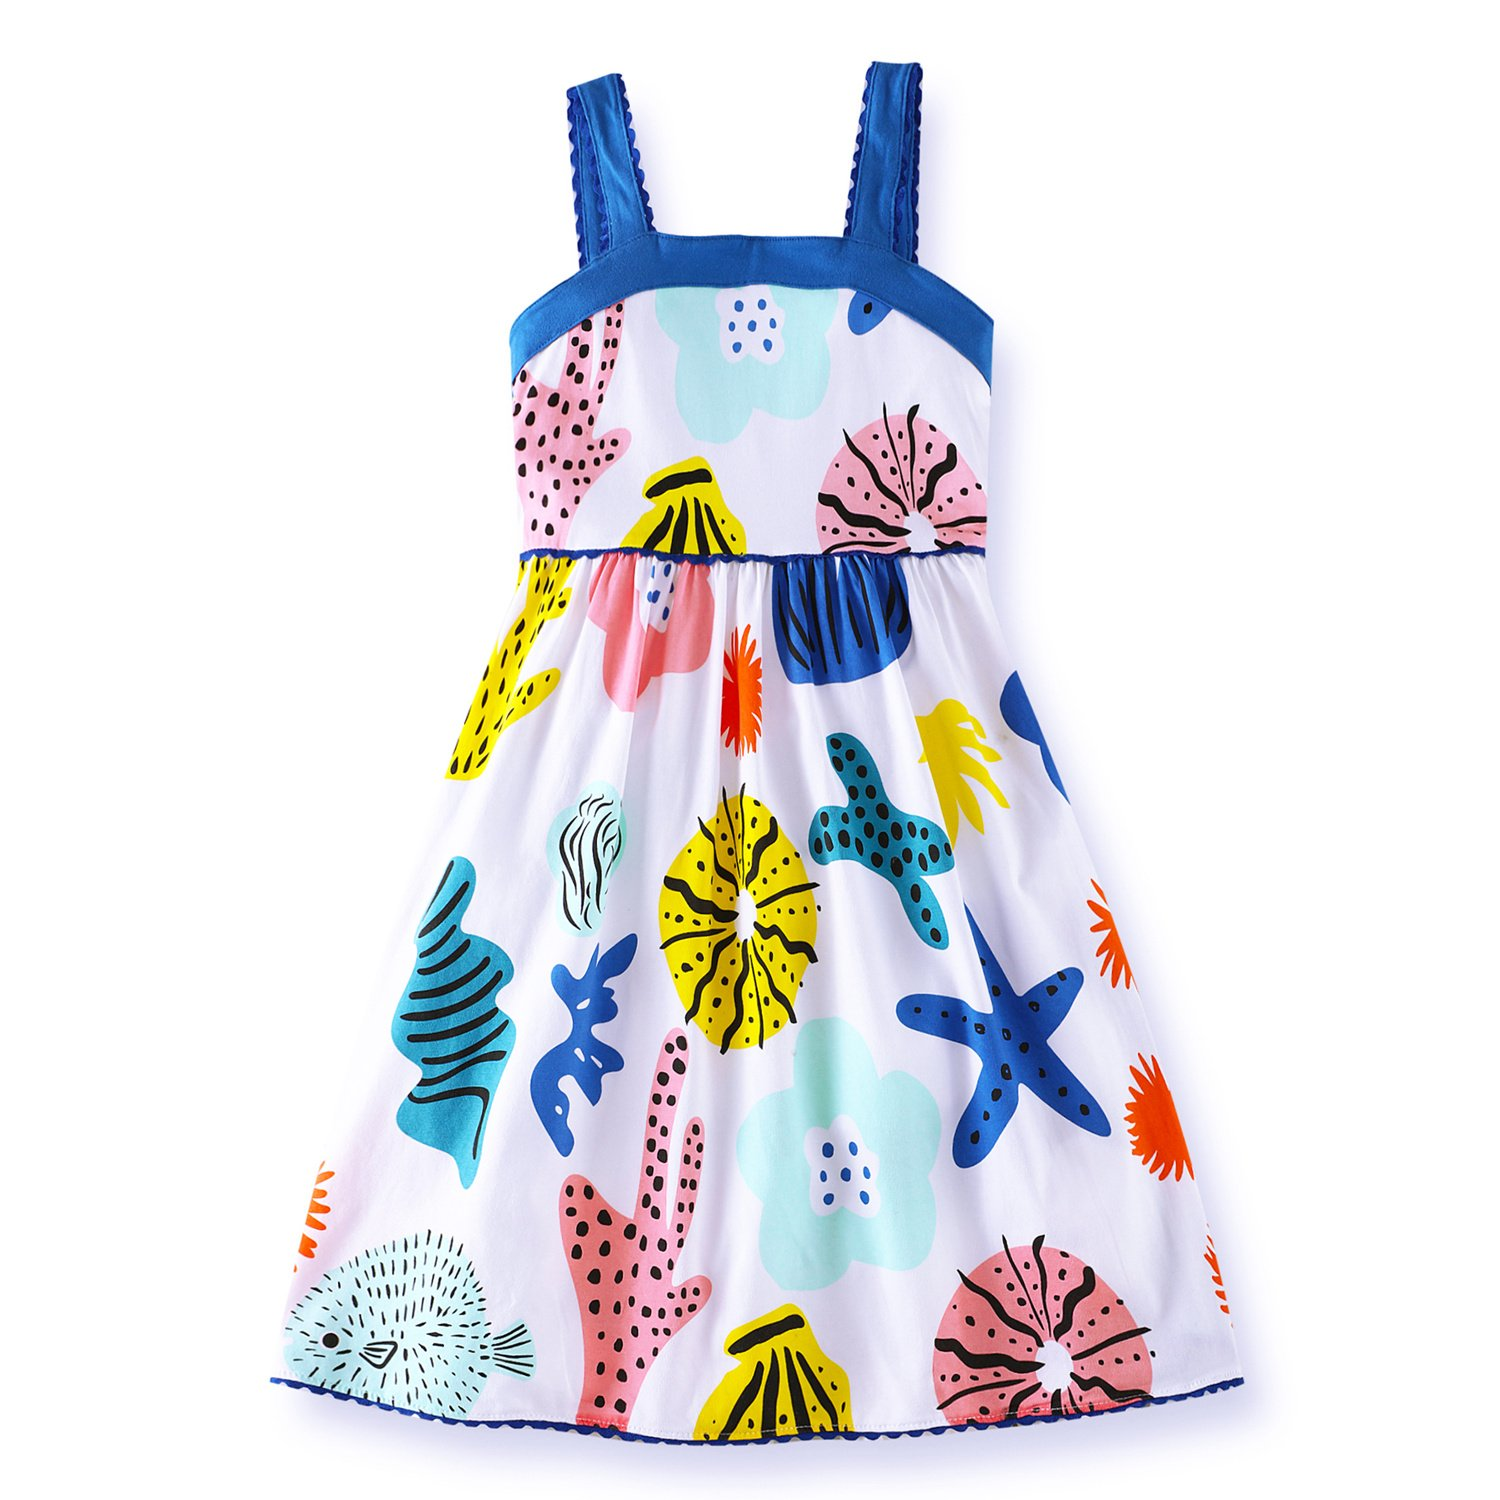 VIKITA Girls Summer Blue Seashell Sundress Short Sleeve Casual Cotton Dress LB173005 6T